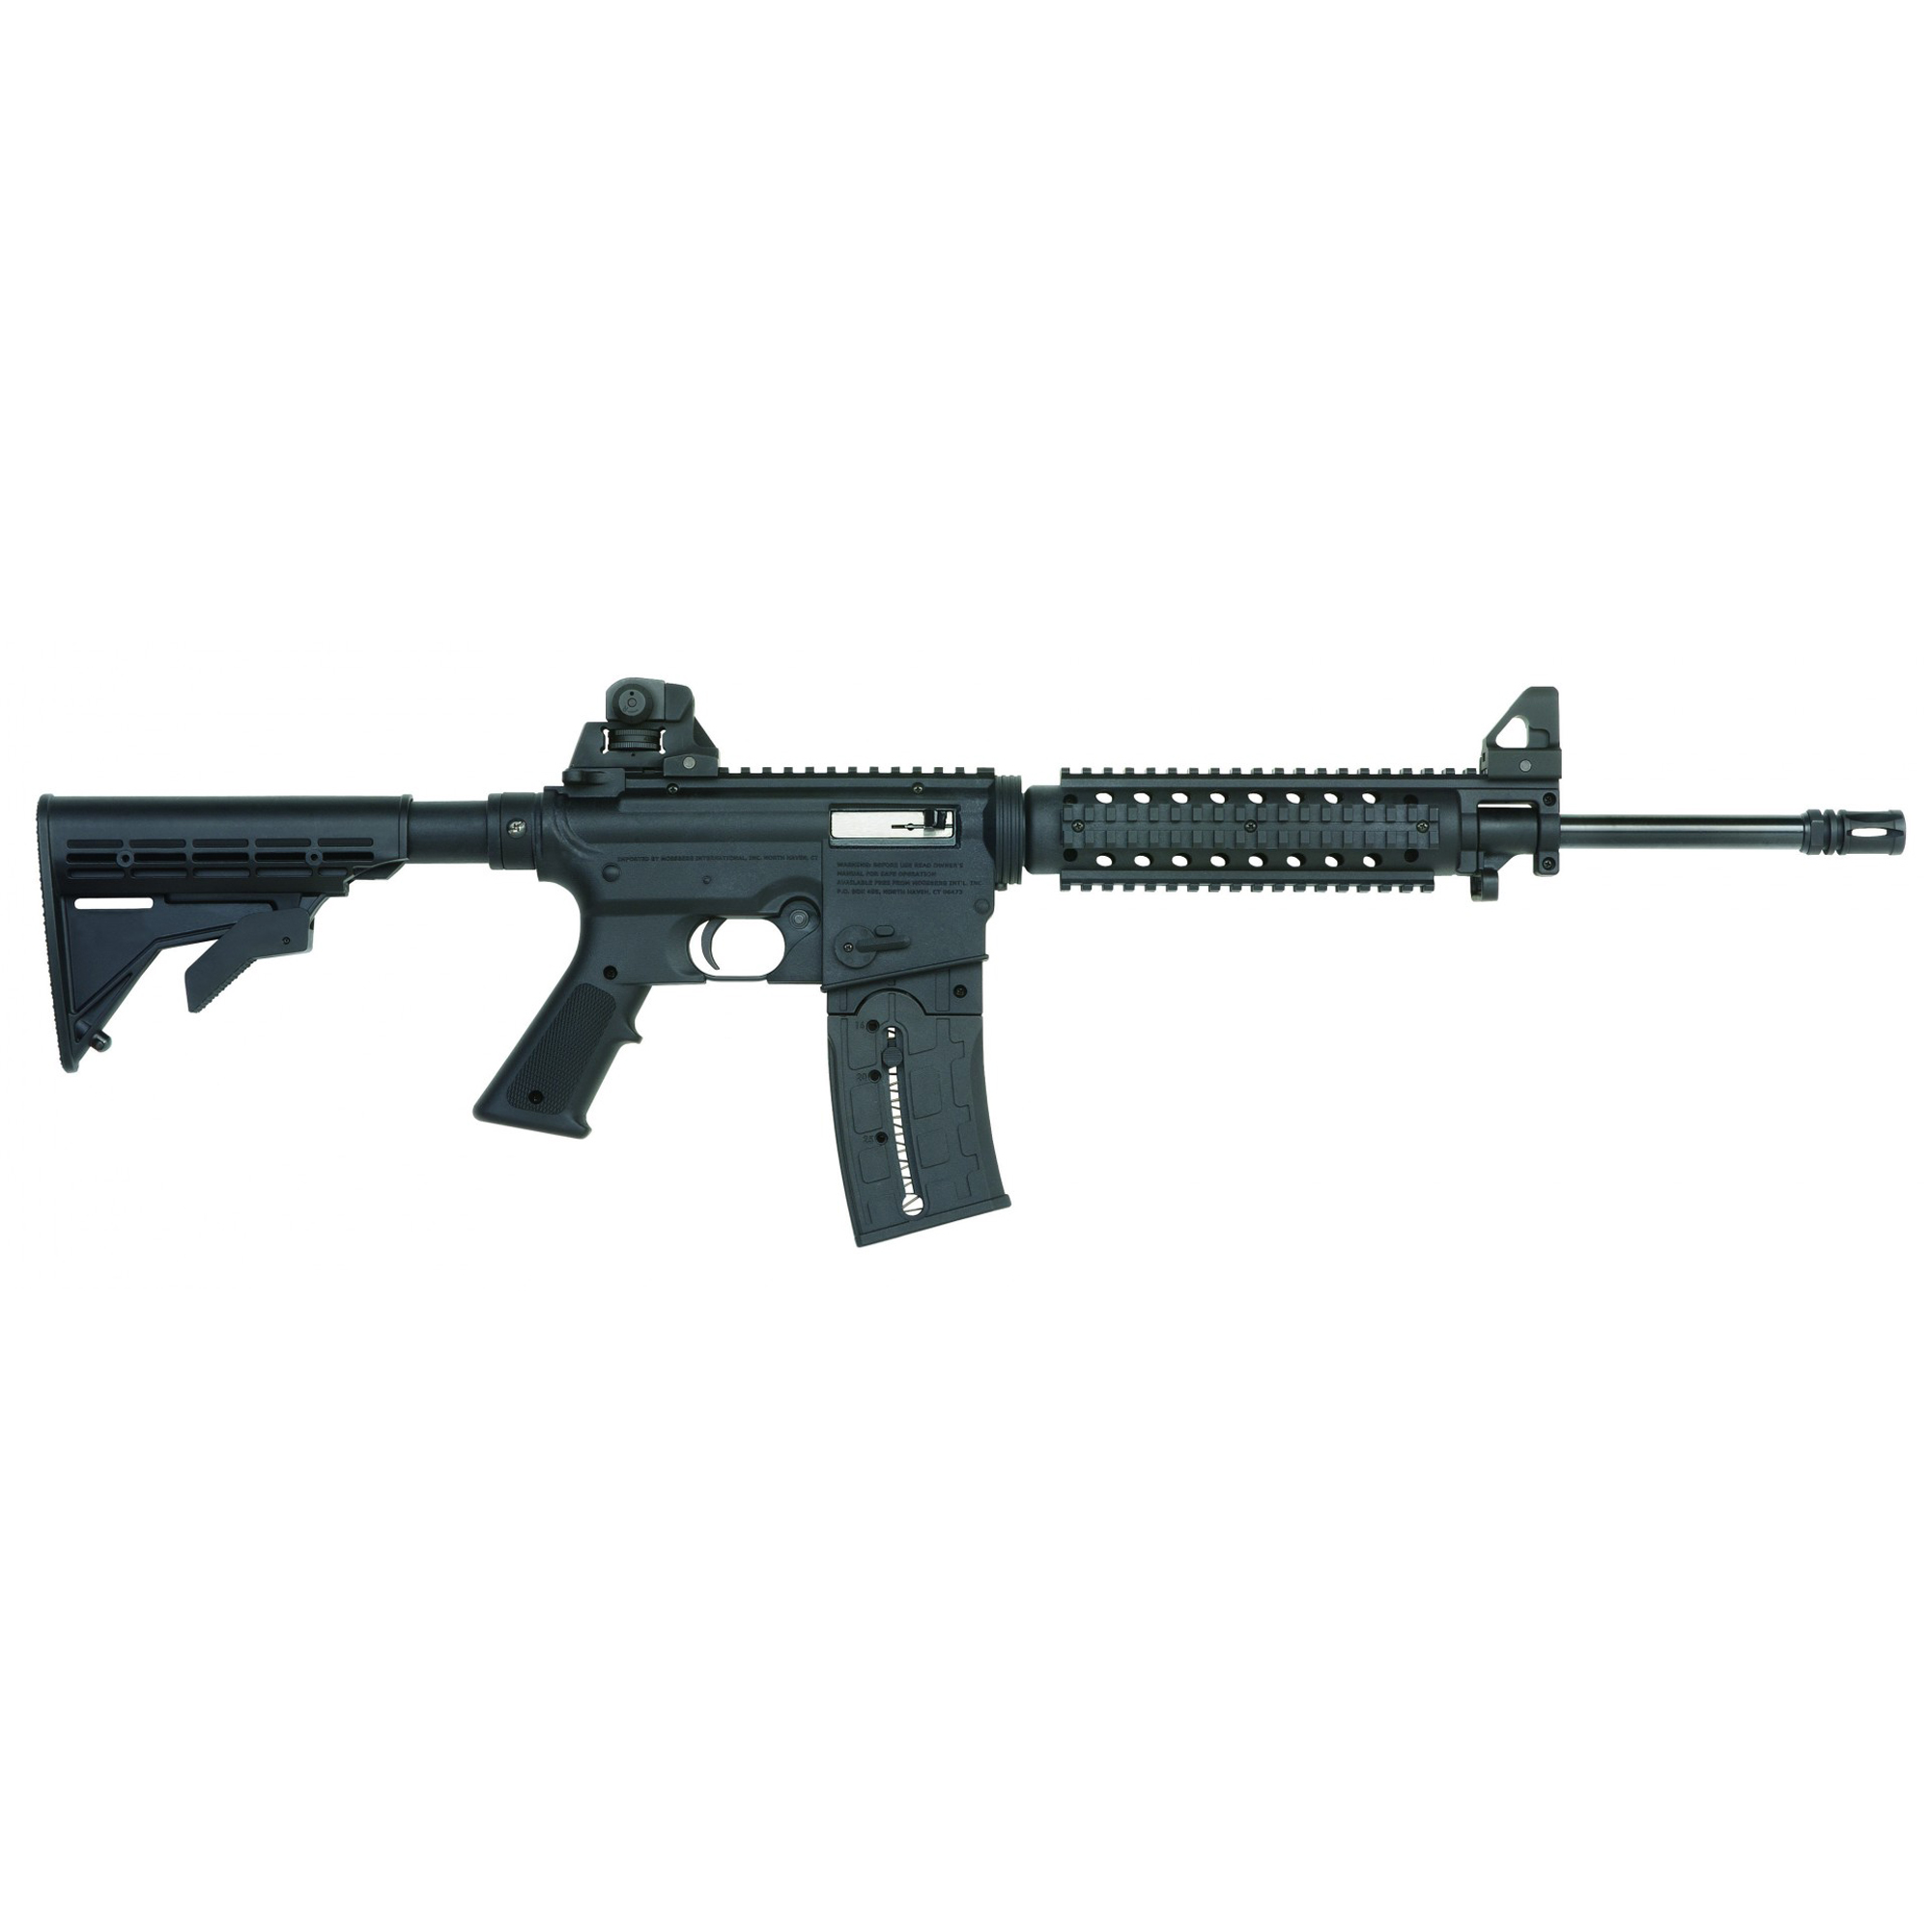 """The look and feel of an AR in a lightweight"""" fun-to-shoot 22LR rimfire. All 715T rifles feature a vented quad-rail forend for use with a multitude of available accessories like lights"""" sights"""" lasers and forend grips."""